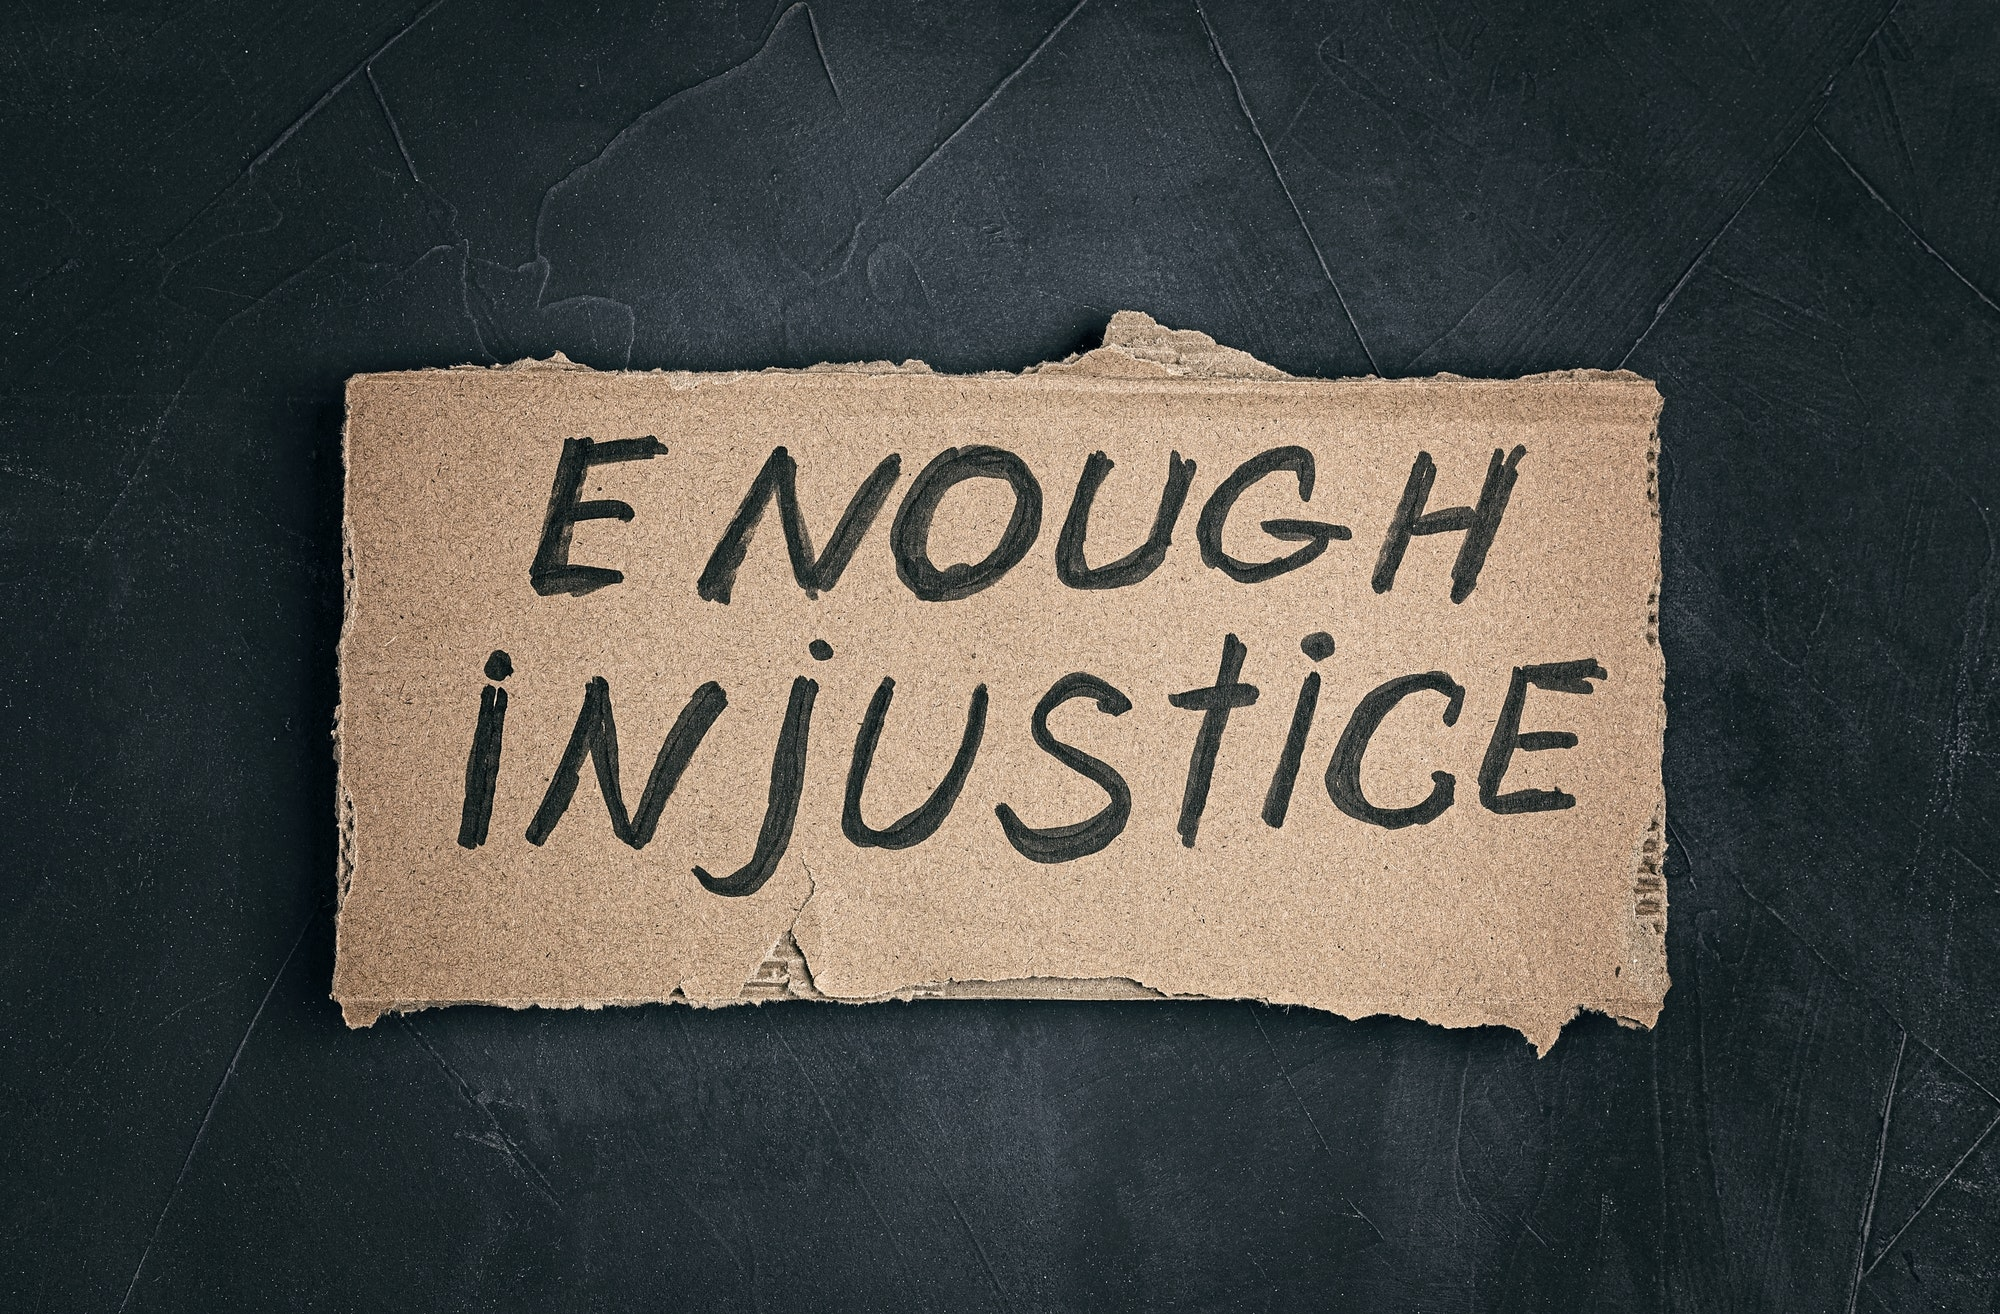 Enough injustice text on cardboard on dark background